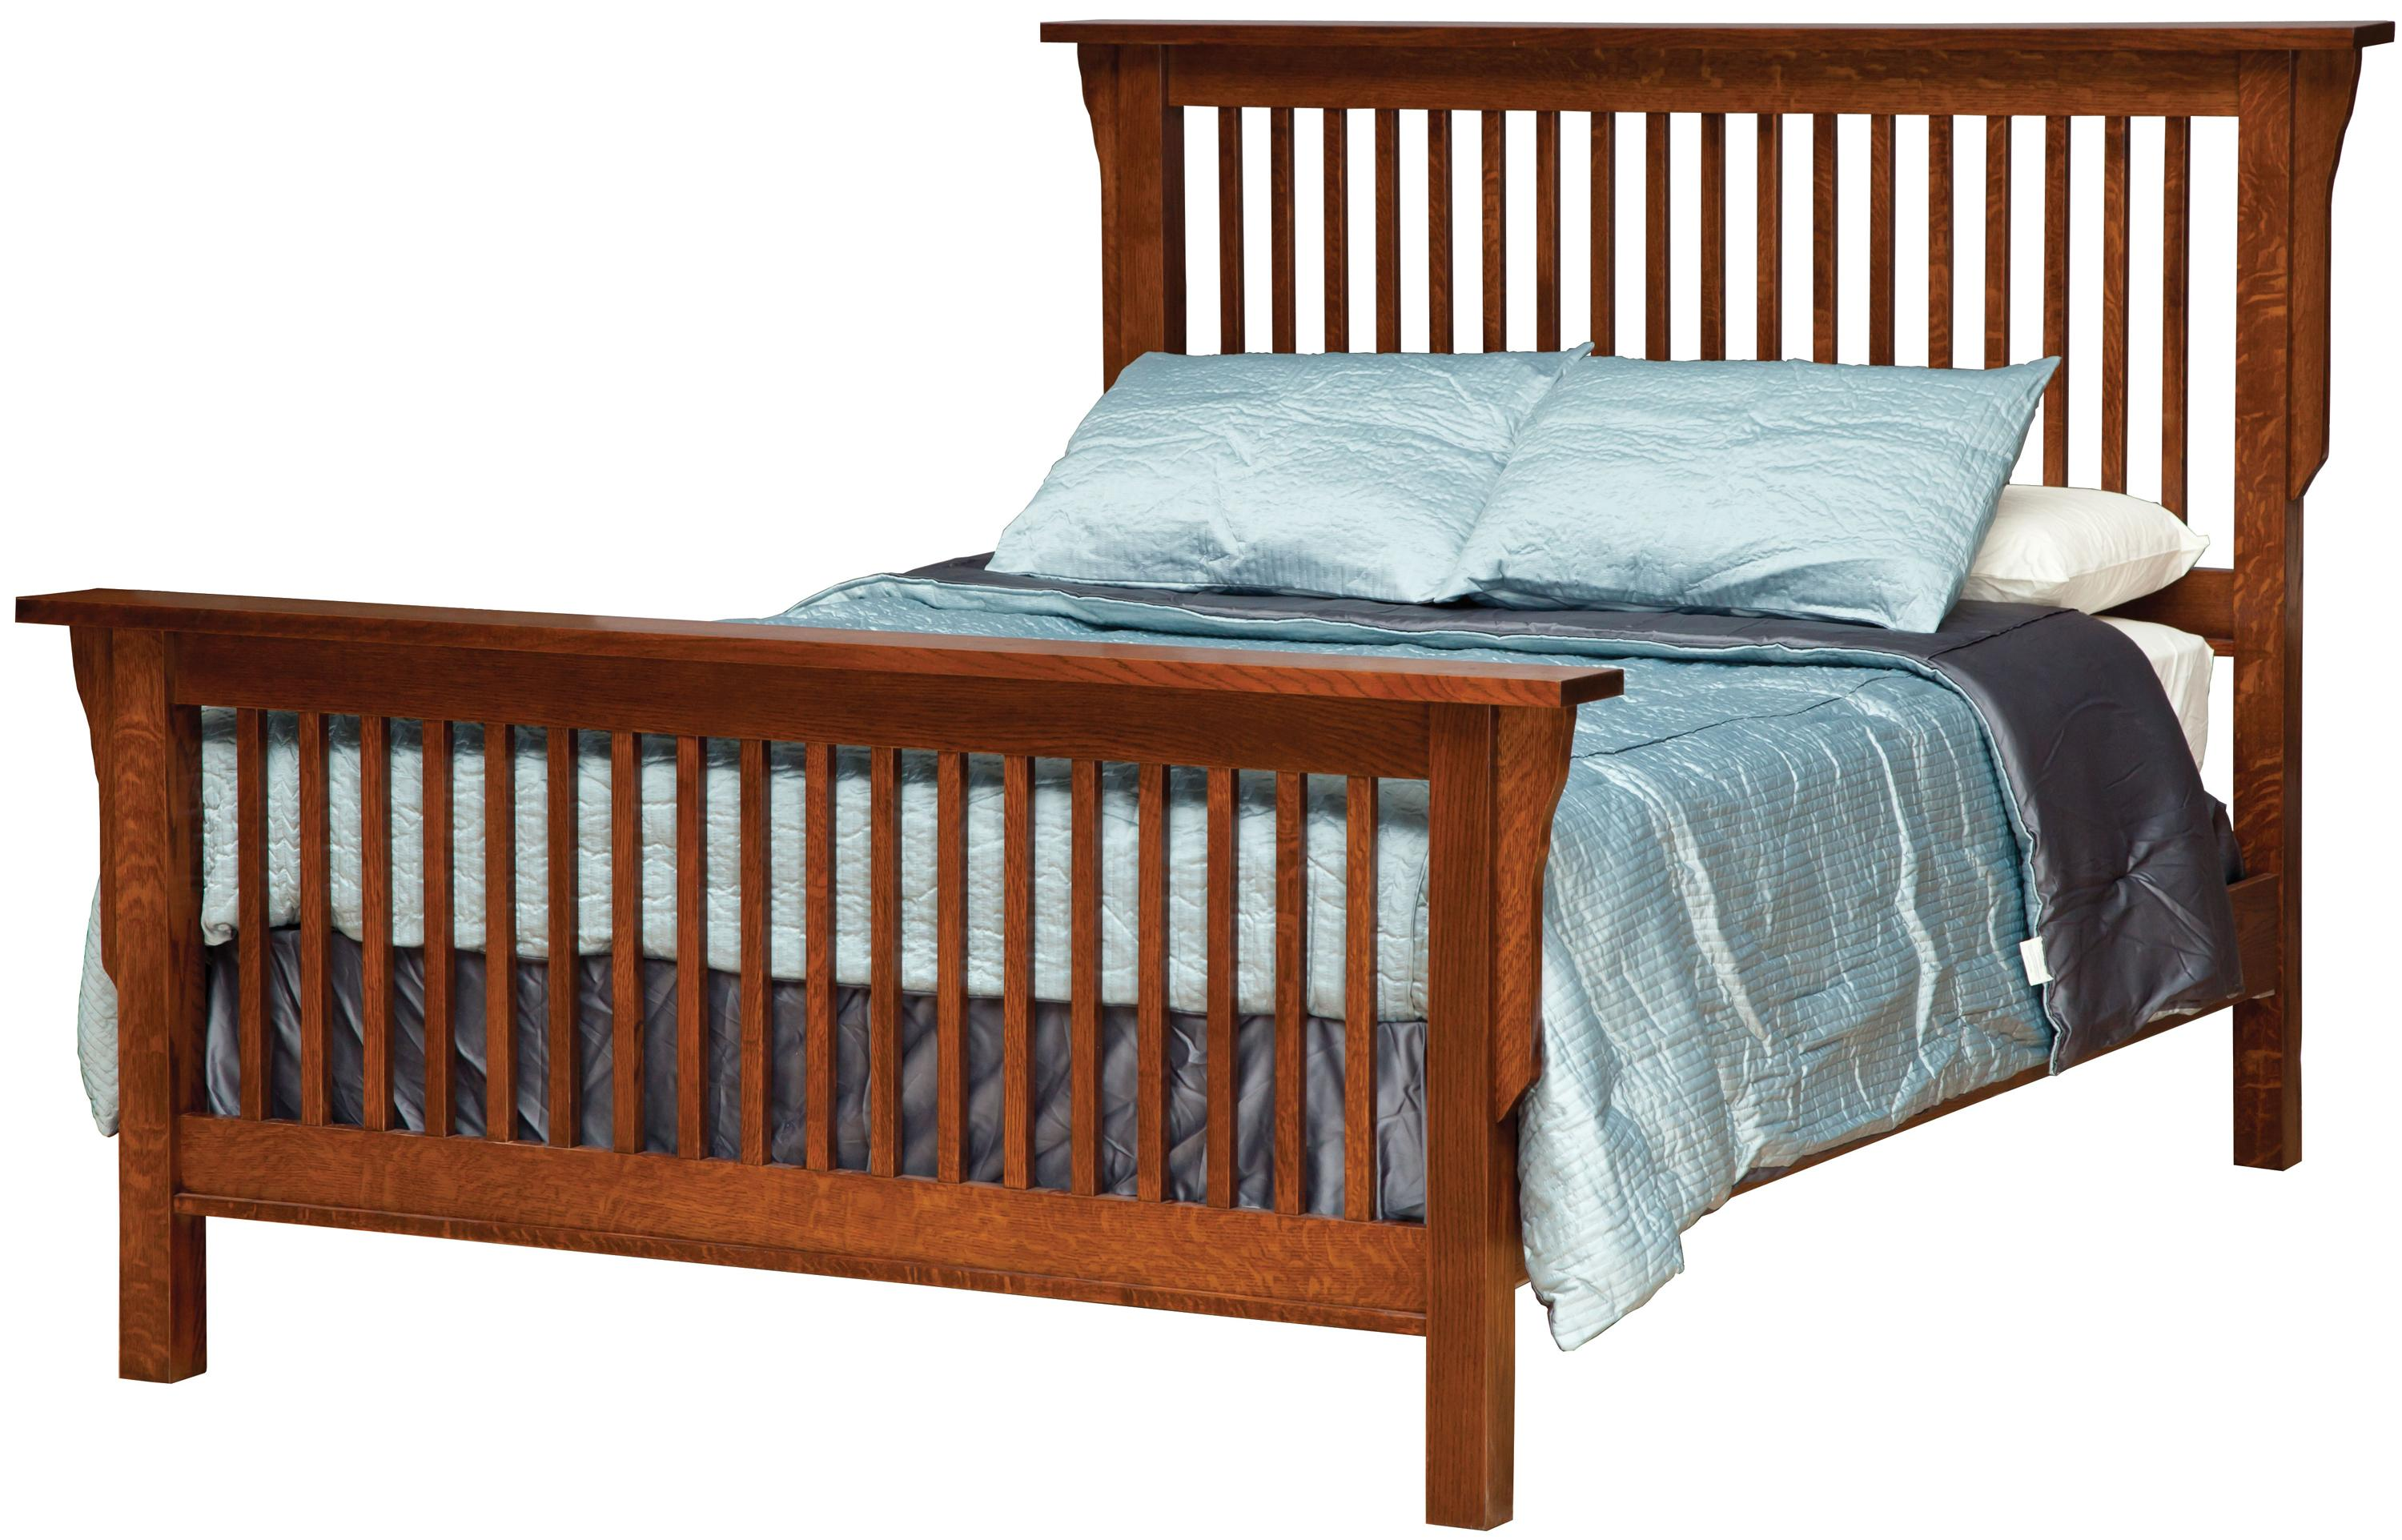 queen mission-style frame bed with headboard & footboard slat